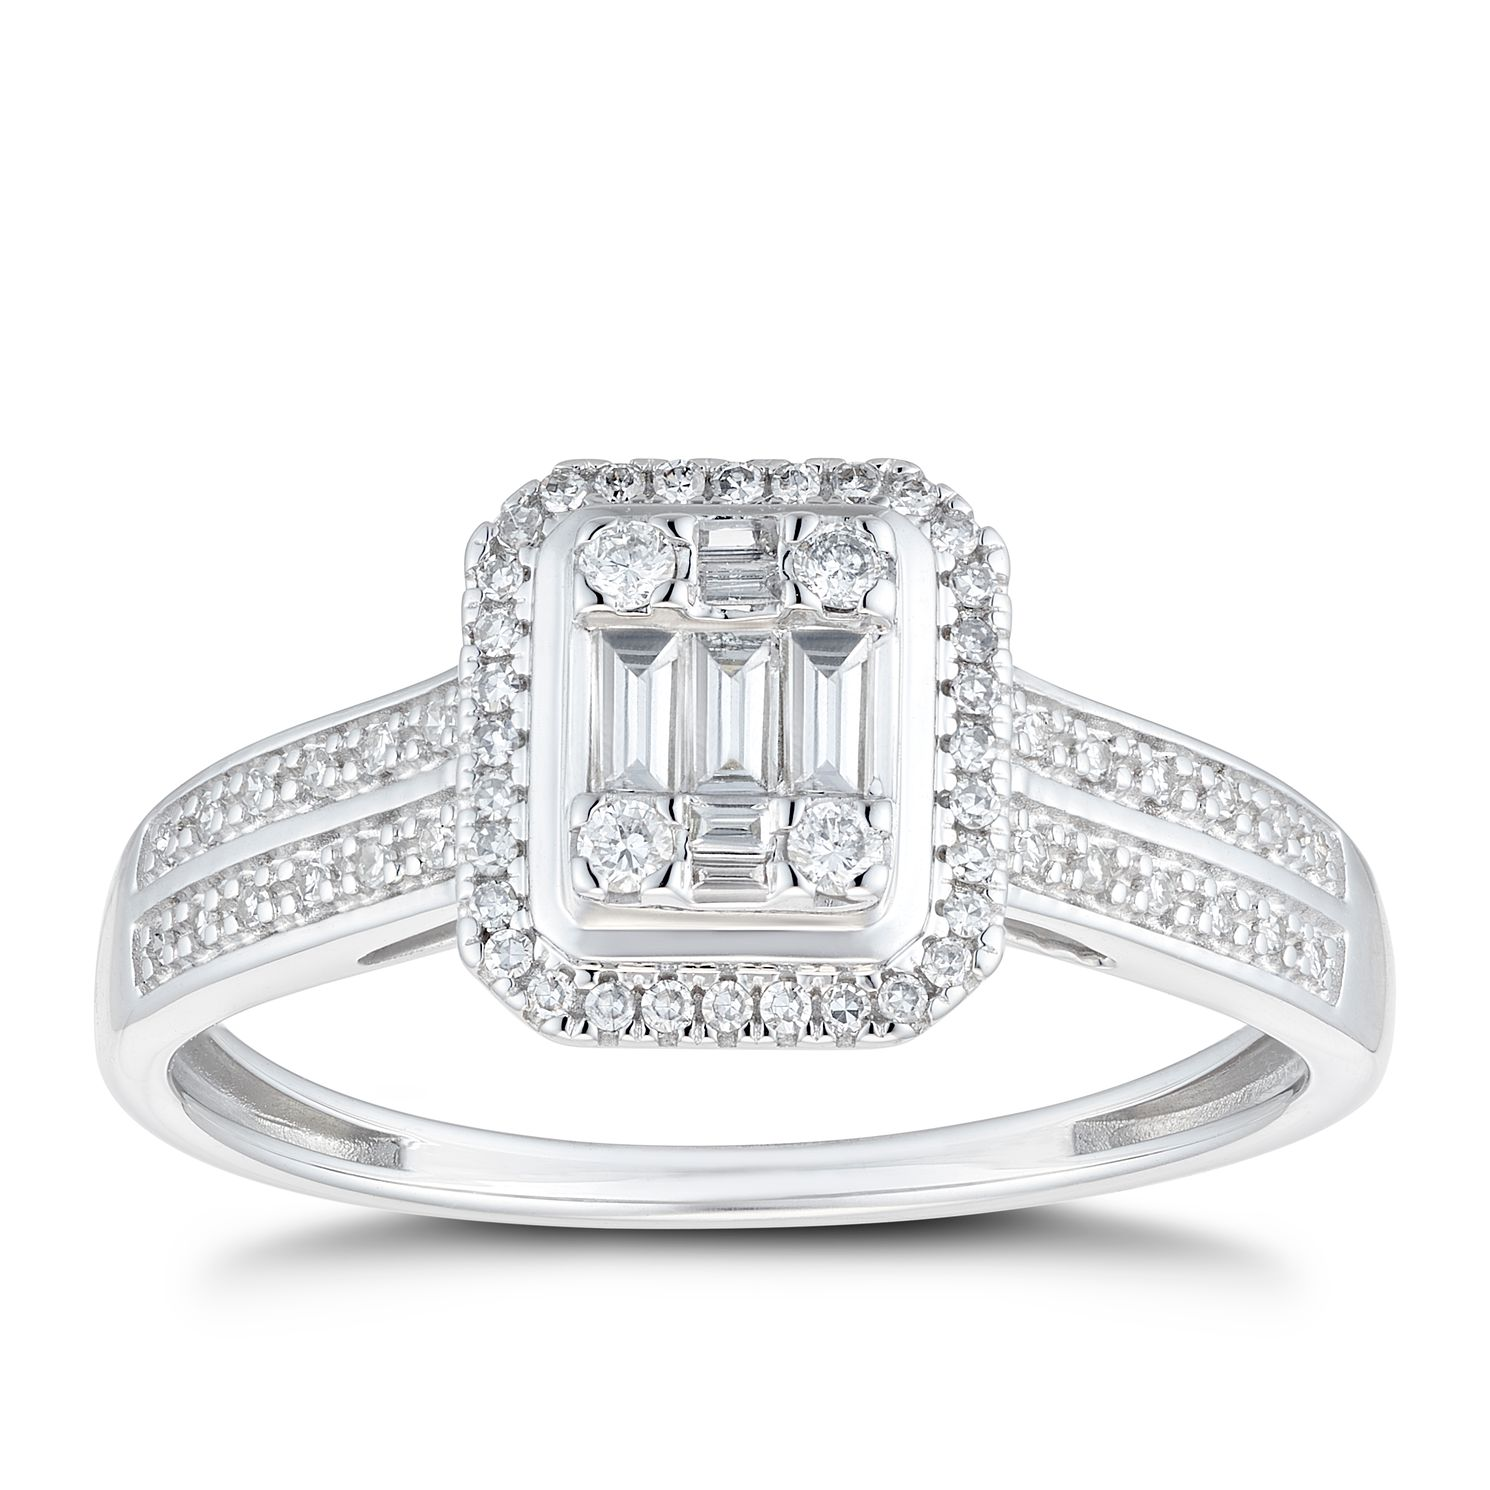 9ct White Gold 0.25ct Total Diamond Baguette Cluster Ring - Product number 1116959